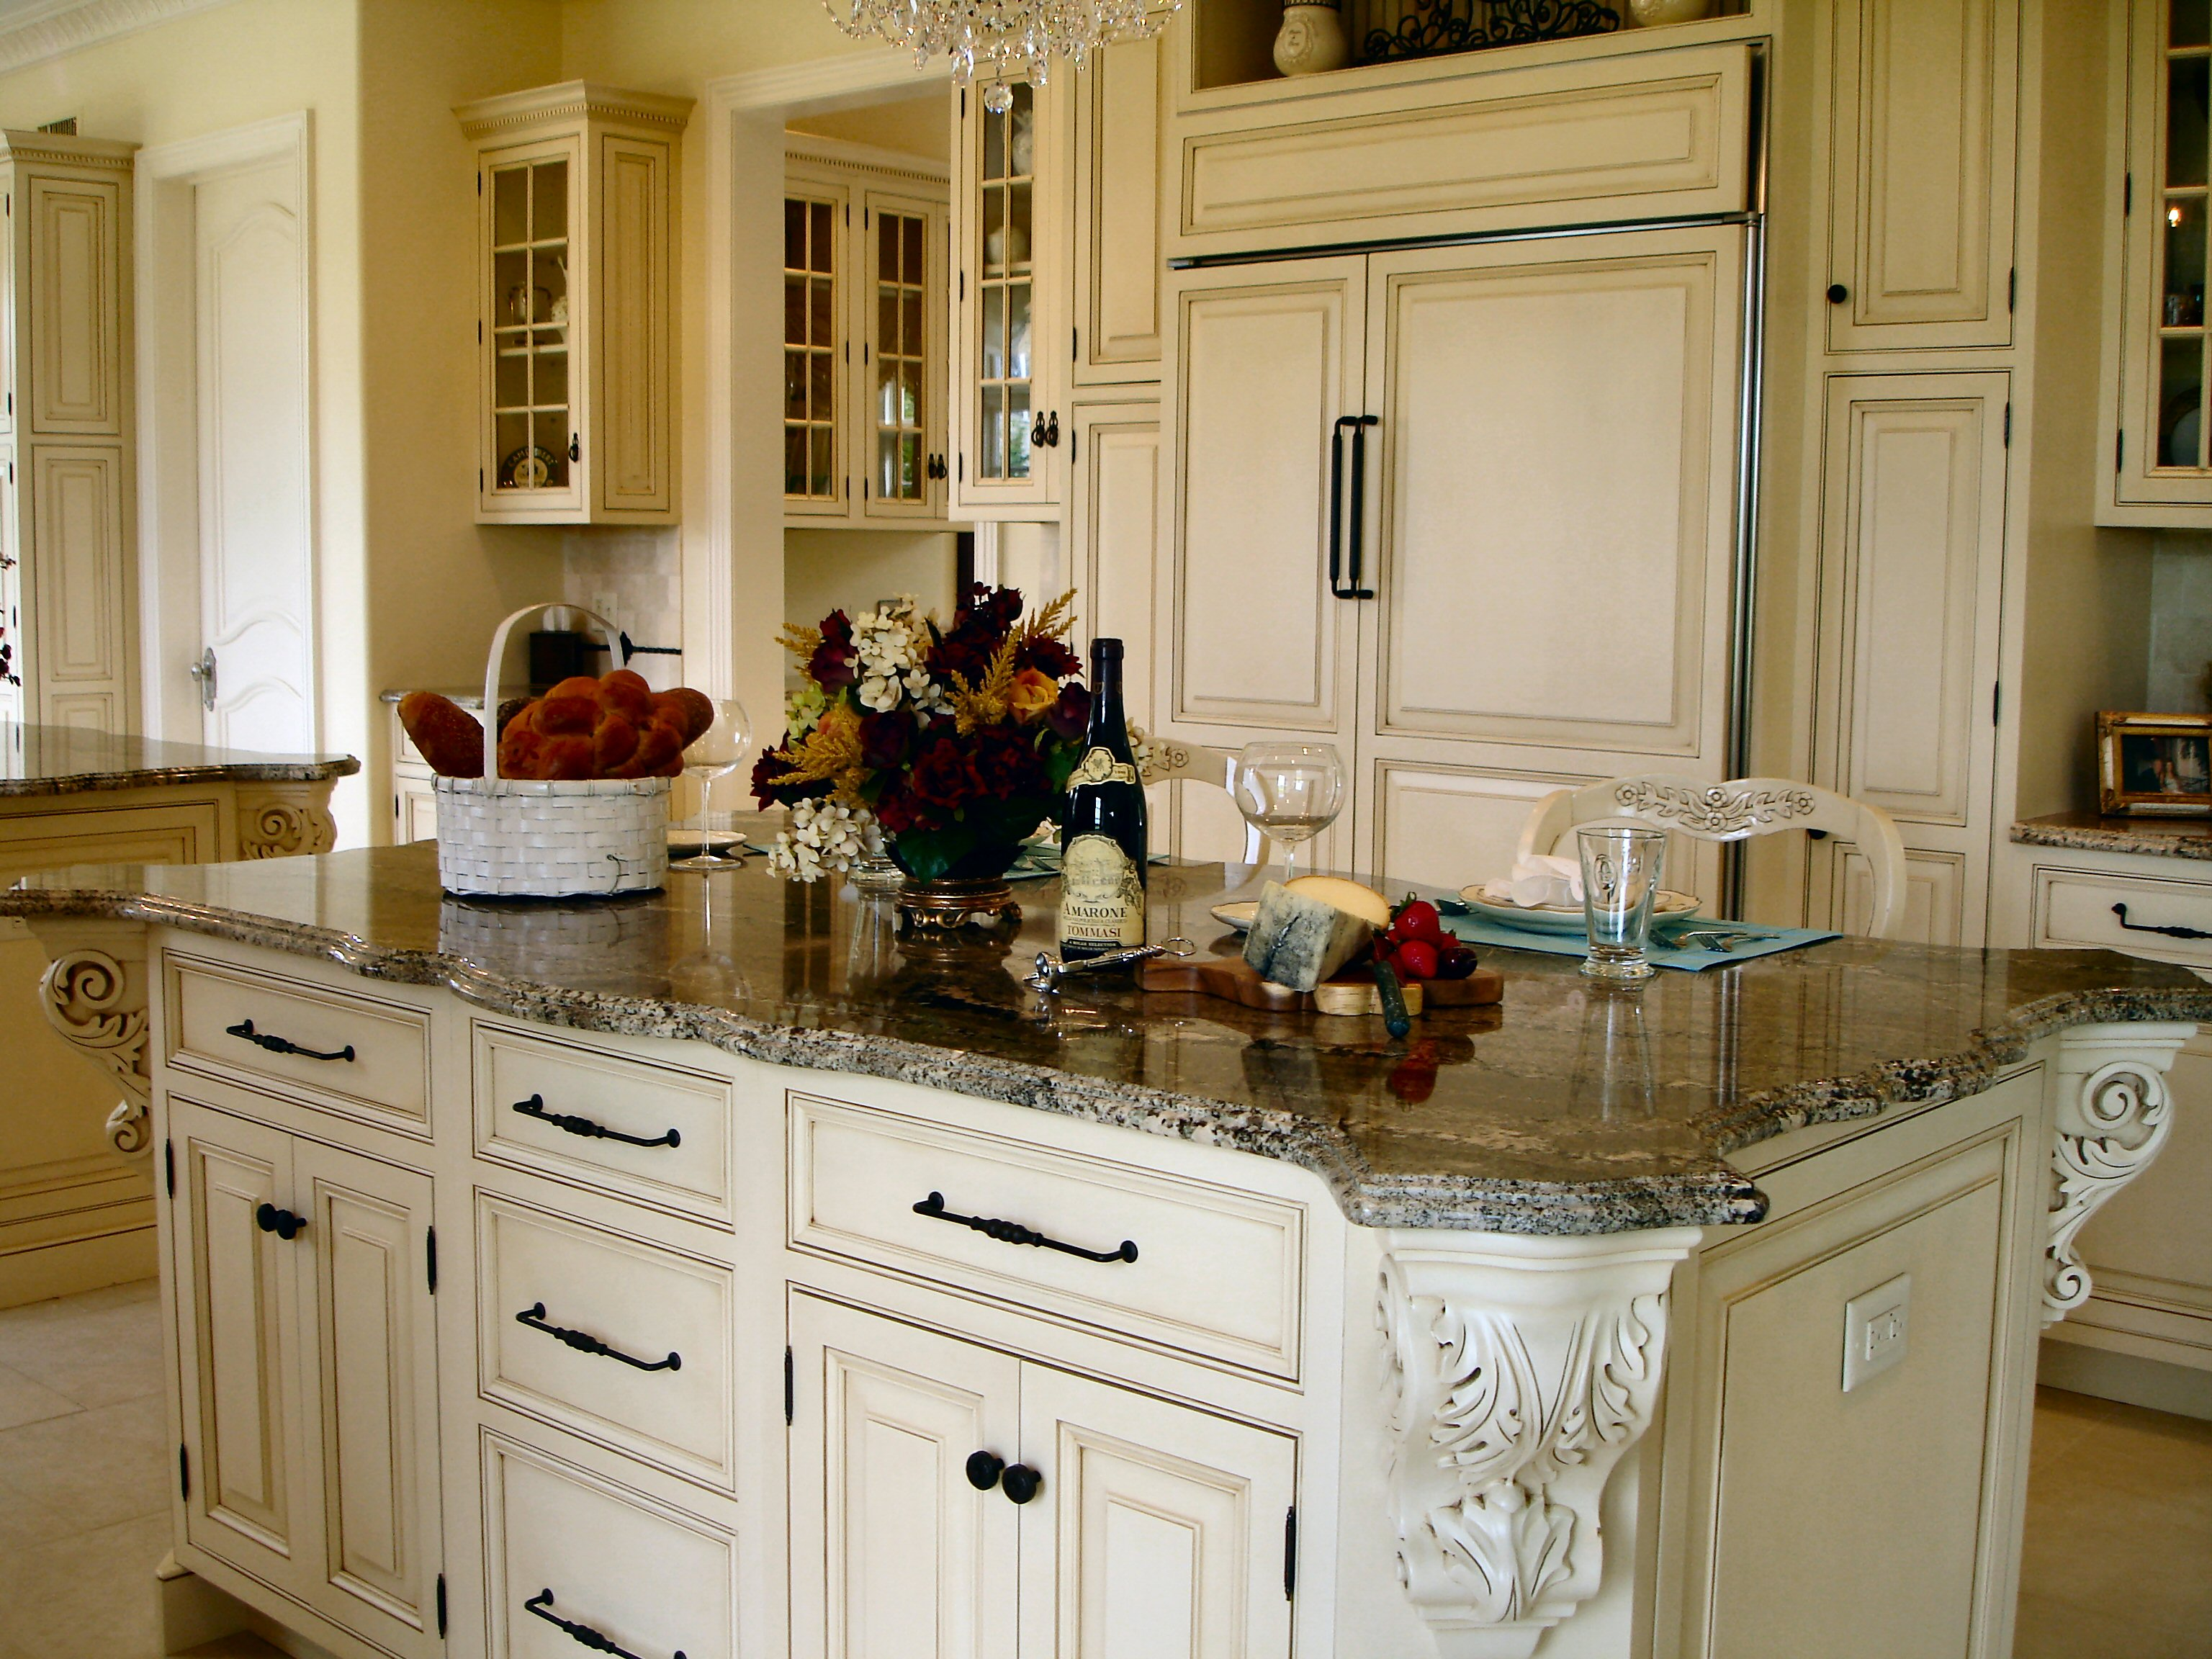 Monmouth county kitchen remodeling ideas to inspire you for Design for kitchen island